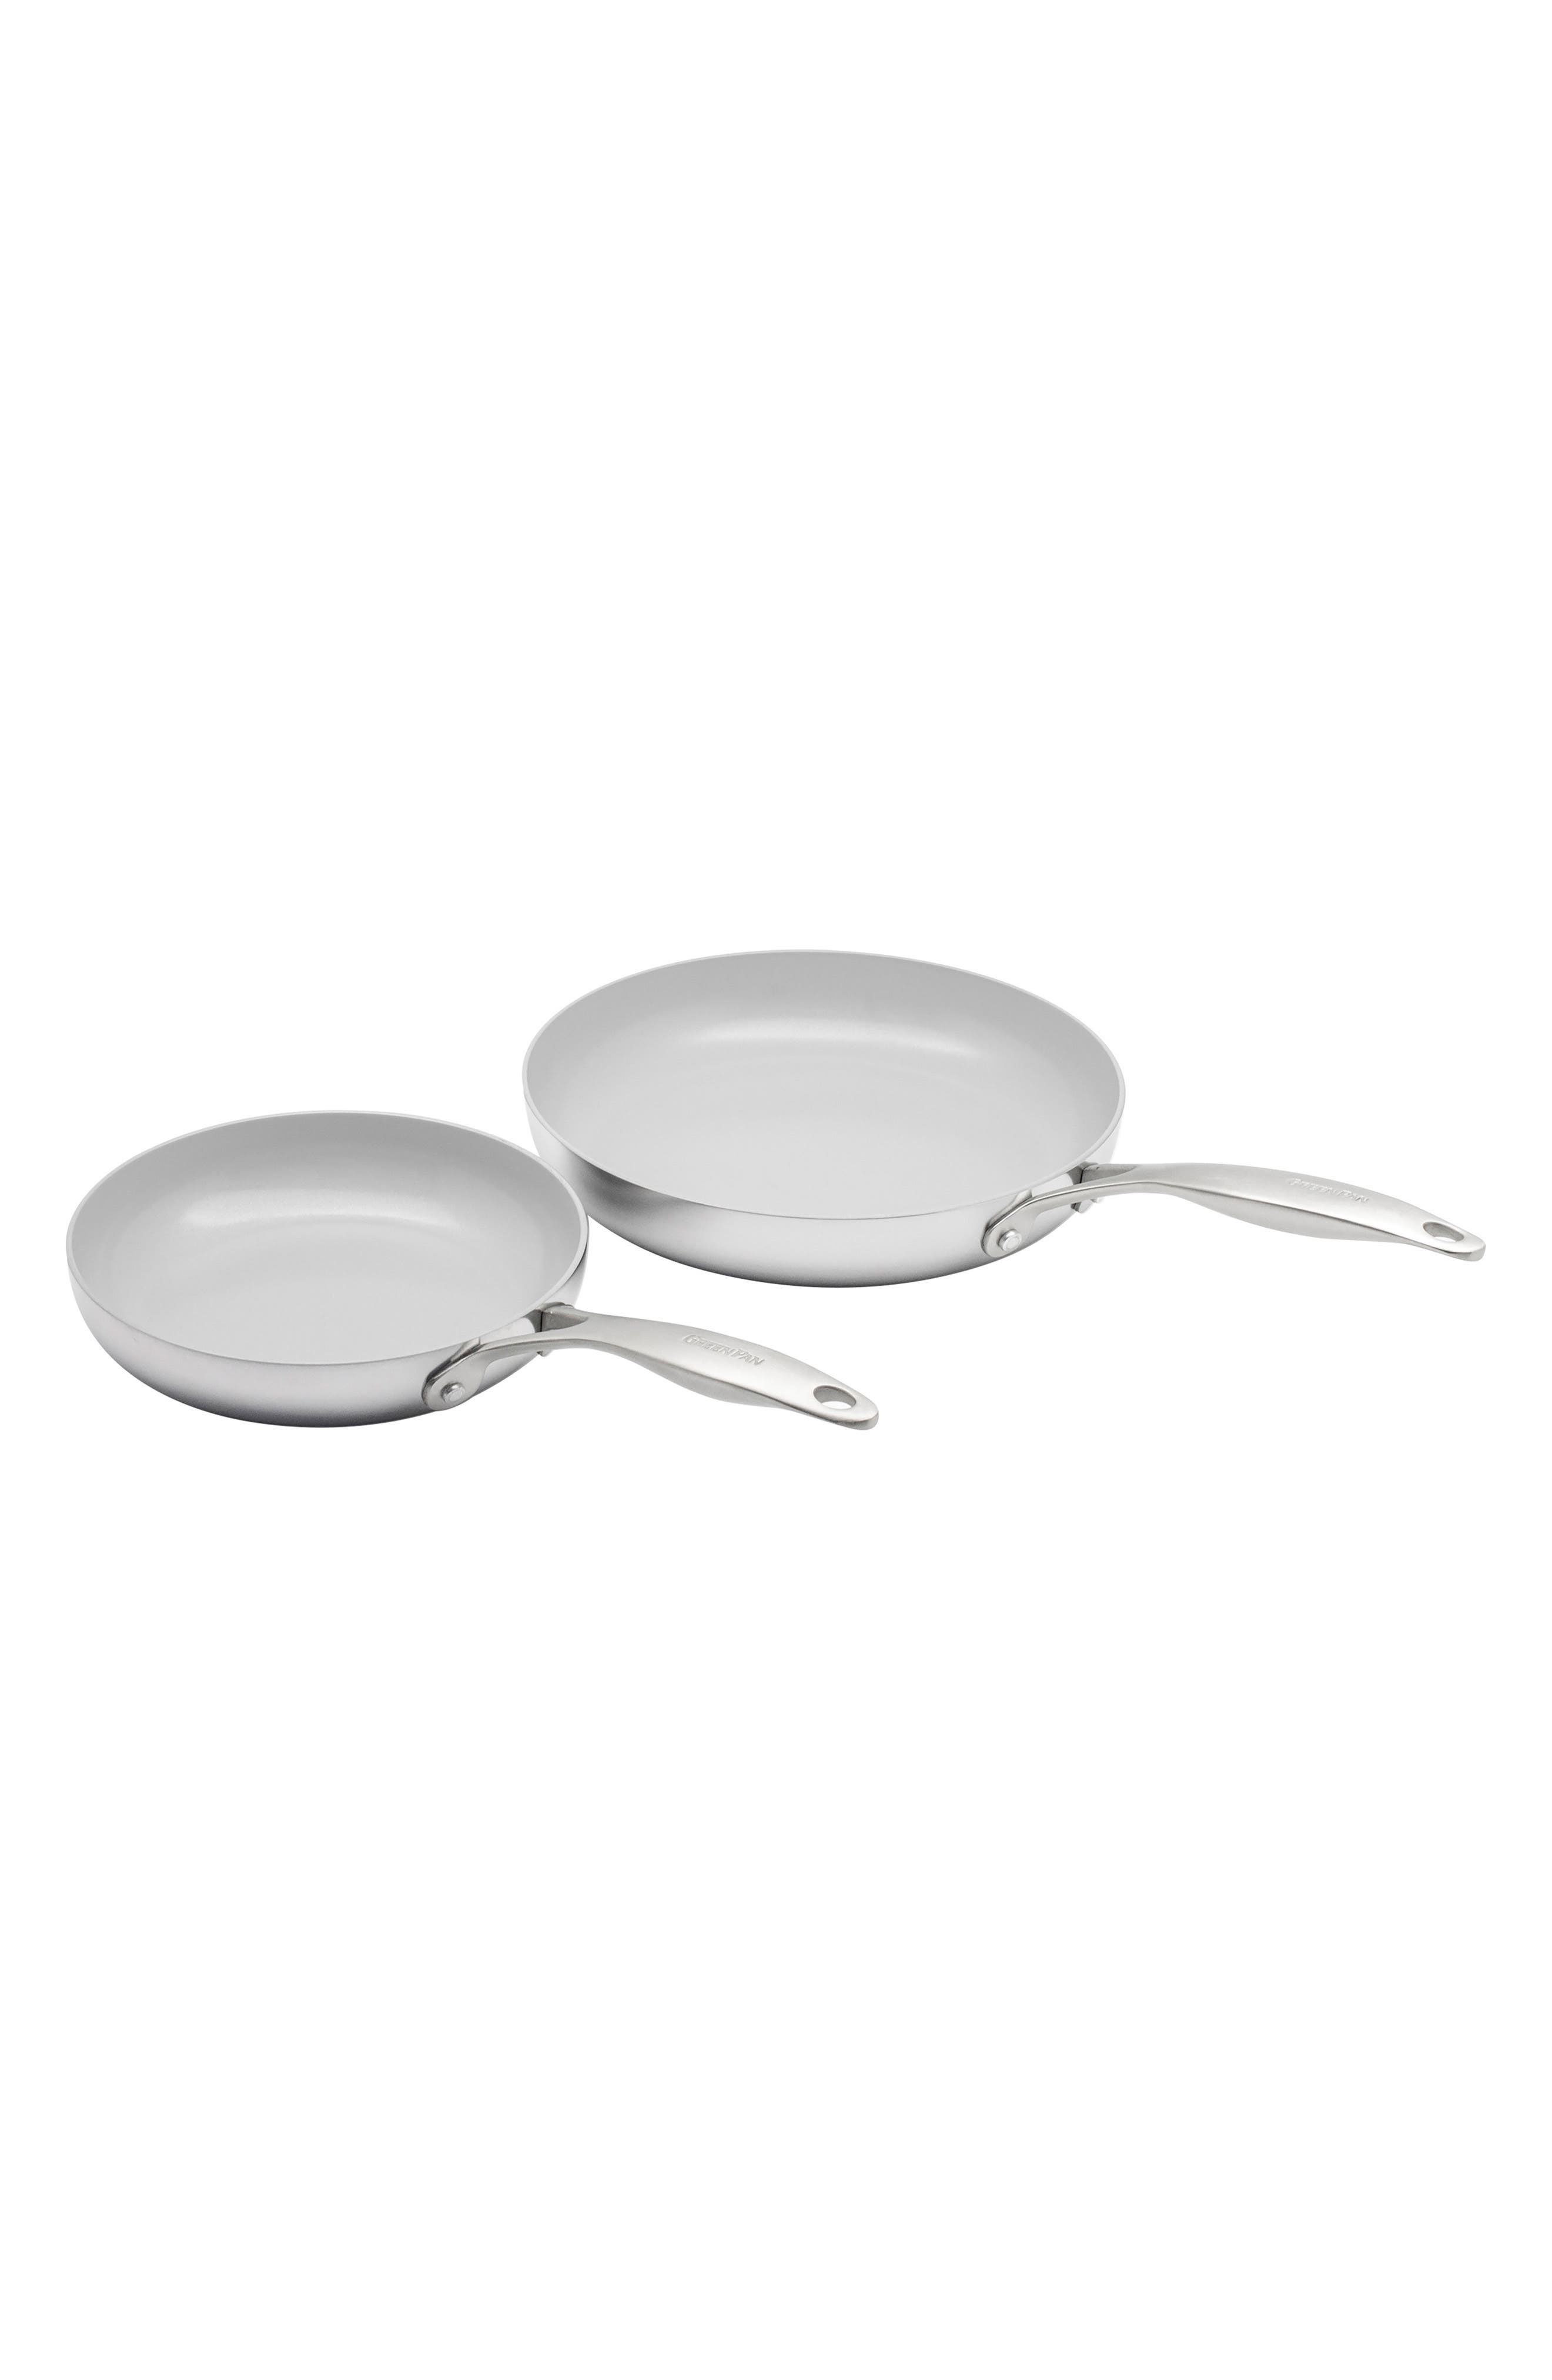 Venice Pro 8-Inch & 10-Inch Multilayer Stainless Steel Ceramic Nonstick Frying Pan Set,                         Main,                         color, Stainless Steel